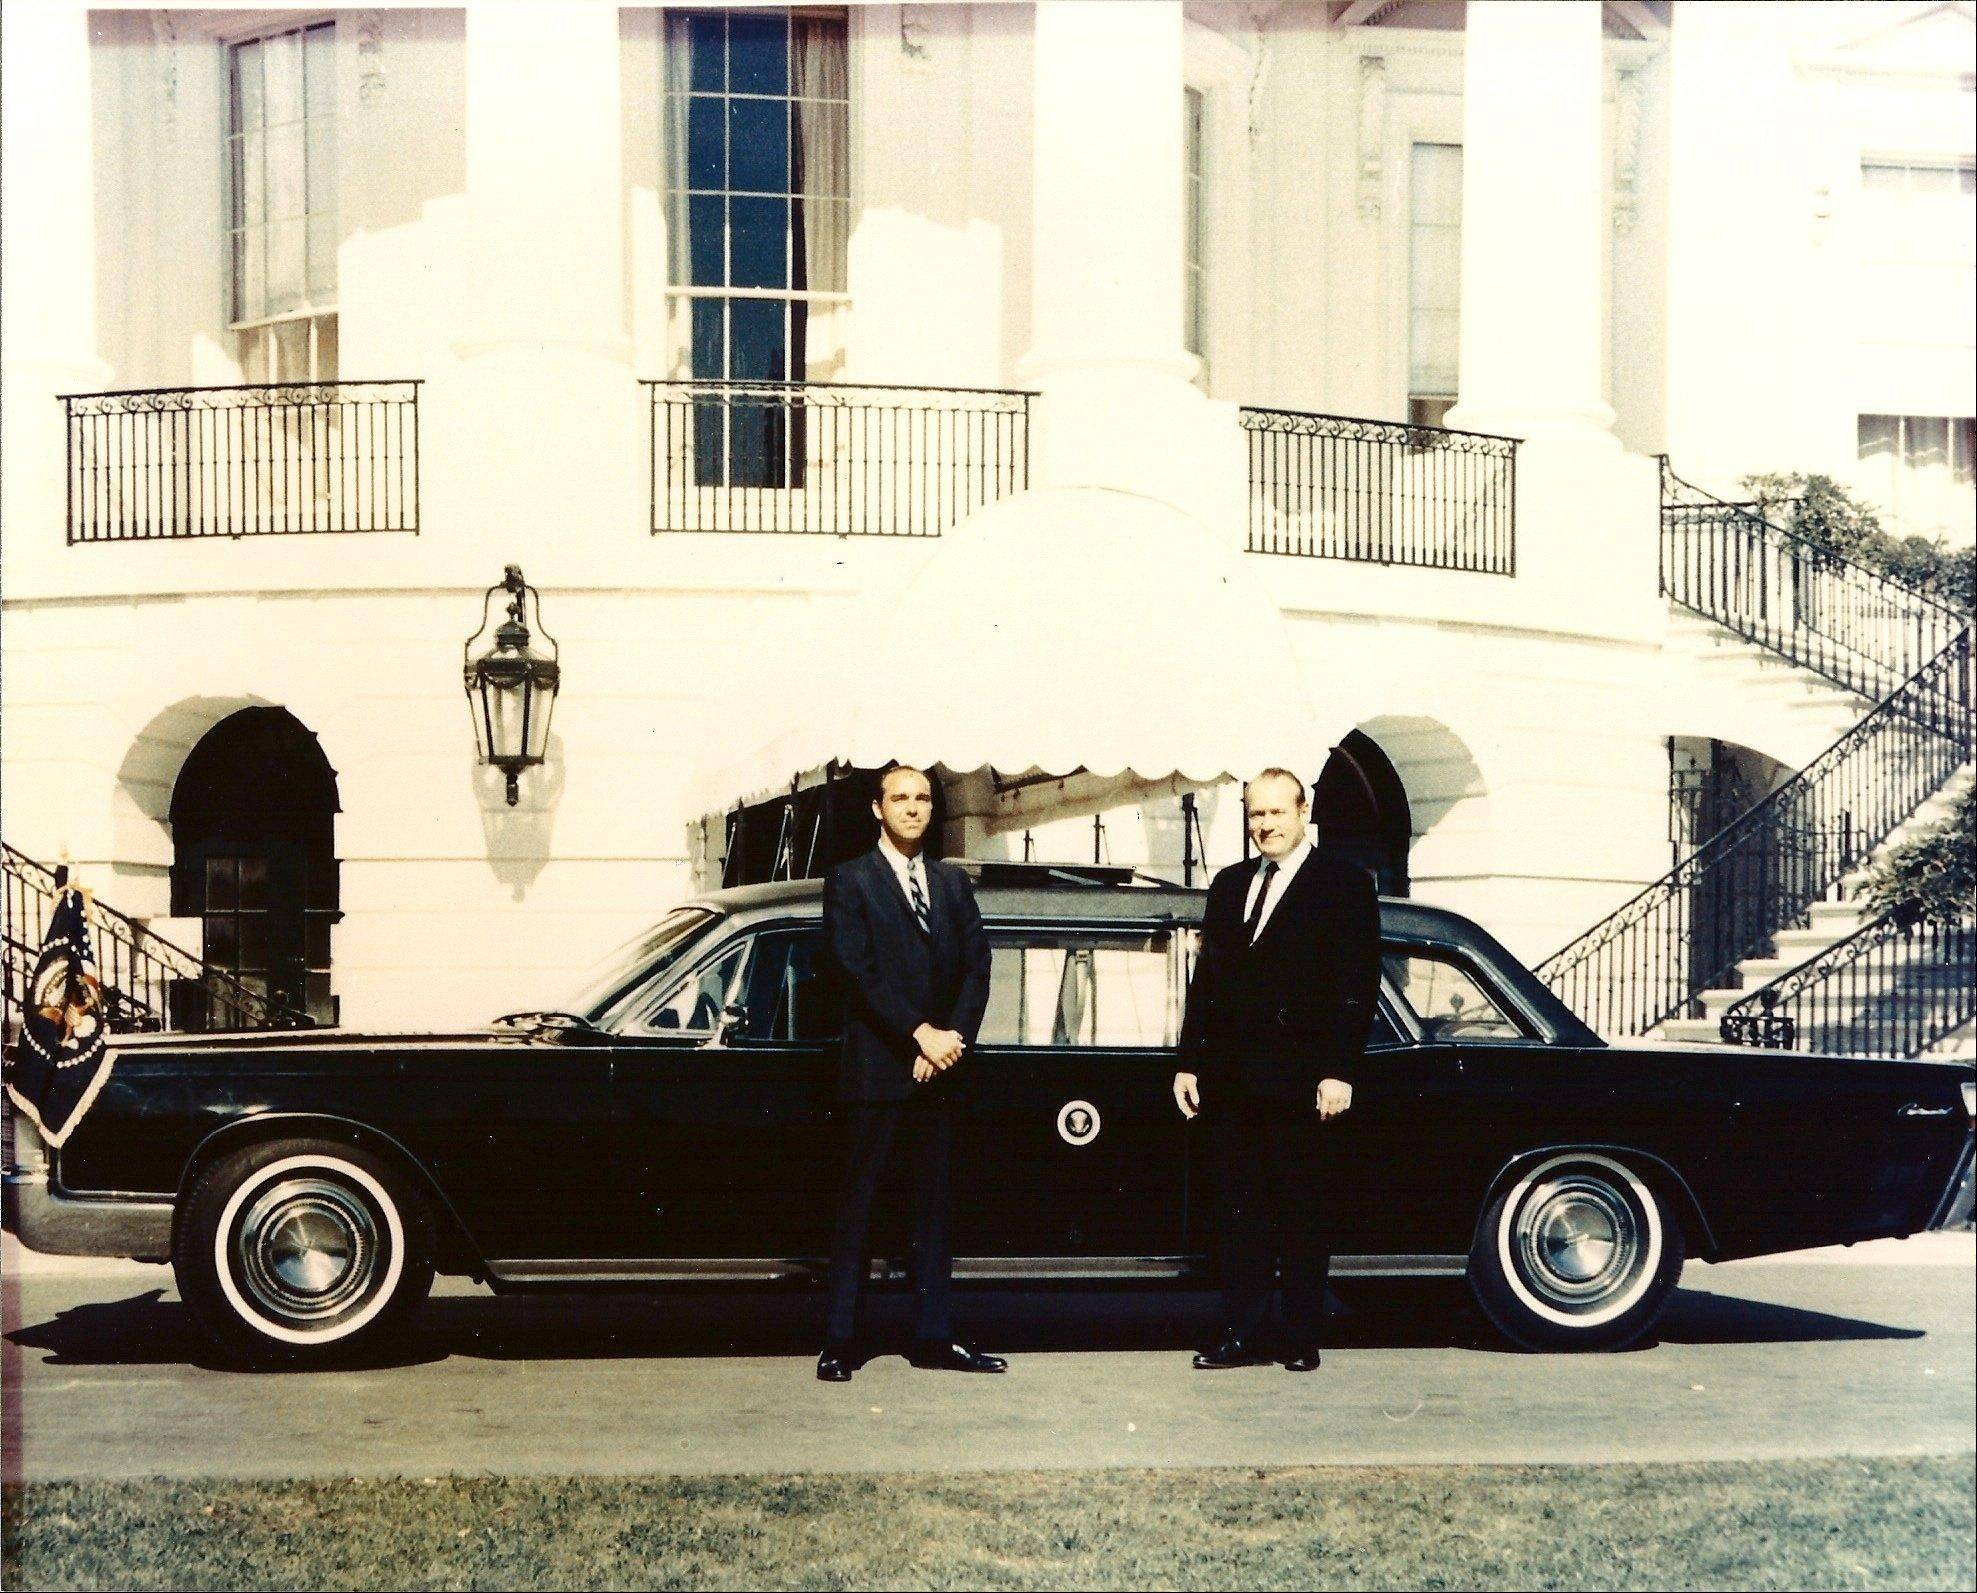 George Lehmann, left, and Robert Peterson at the White House. While commonly known as the Nixon limousine, this Lehmann-Peterson Lincoln Continental was actually accepted by President Lyndon B. Johnson in 1968.